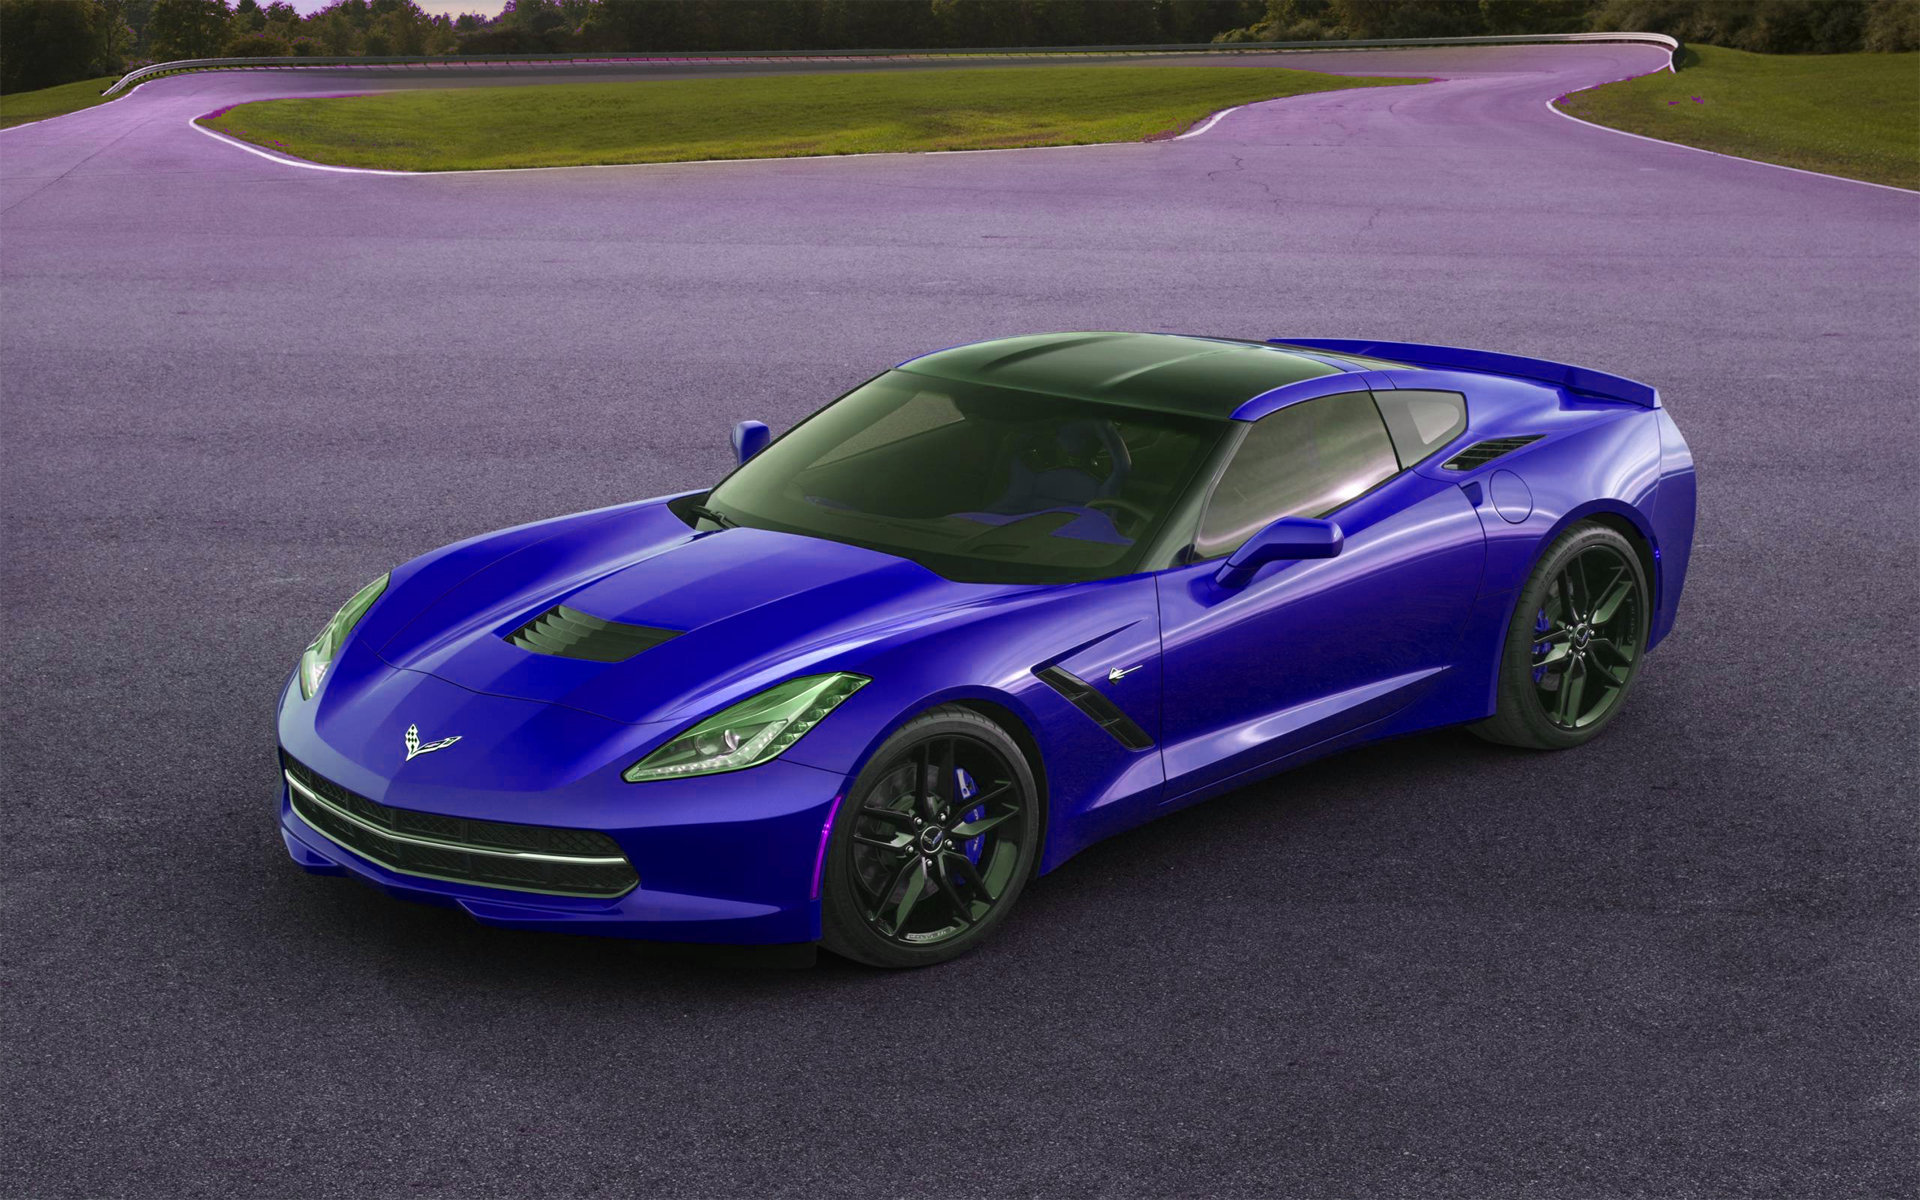 Corvette HD Wallpapers 1080p - WallpaperSafari | 1920 x 1200 jpeg 489kB